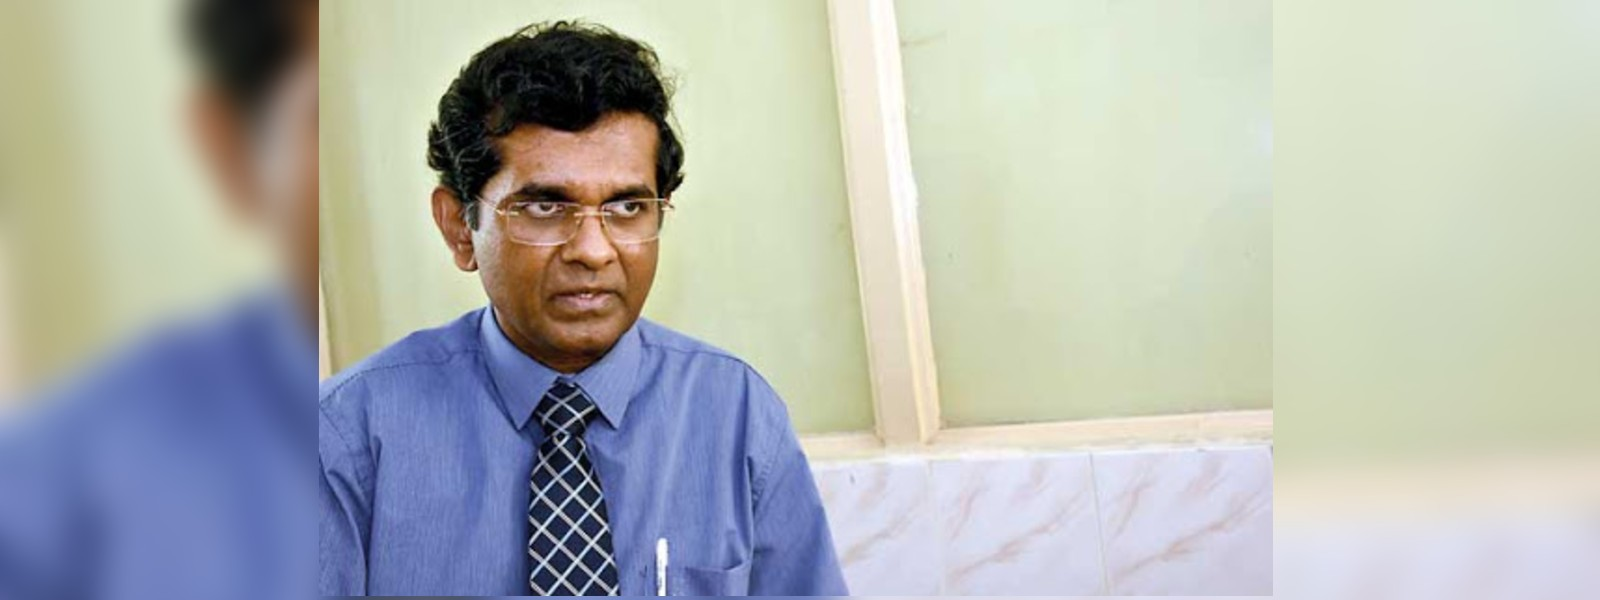 Dr. Ananda Wijewickrama steps down from COVID-19 technical committee